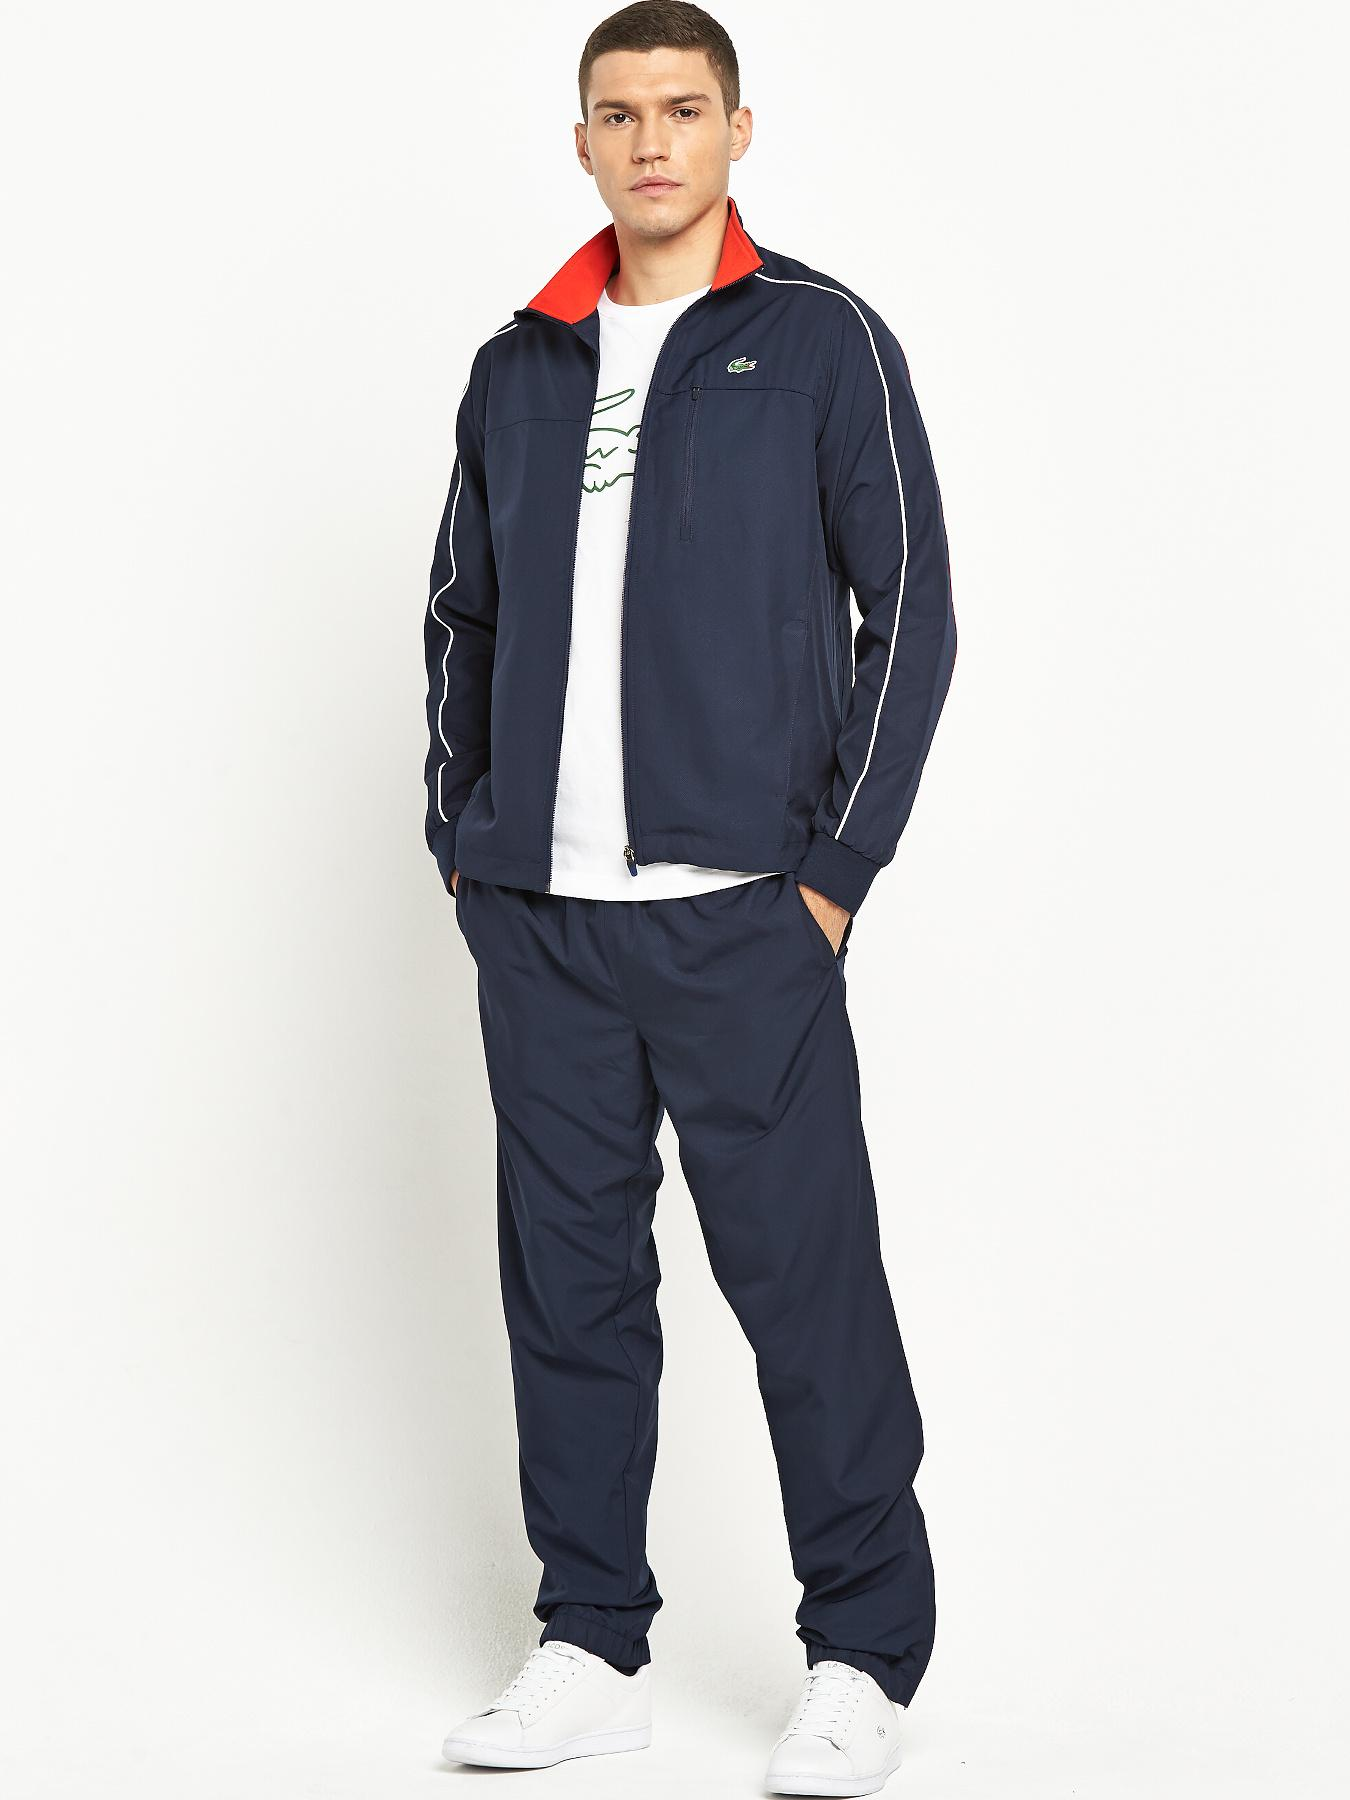 Lacoste Mens Tracksuit - Navy, Navy